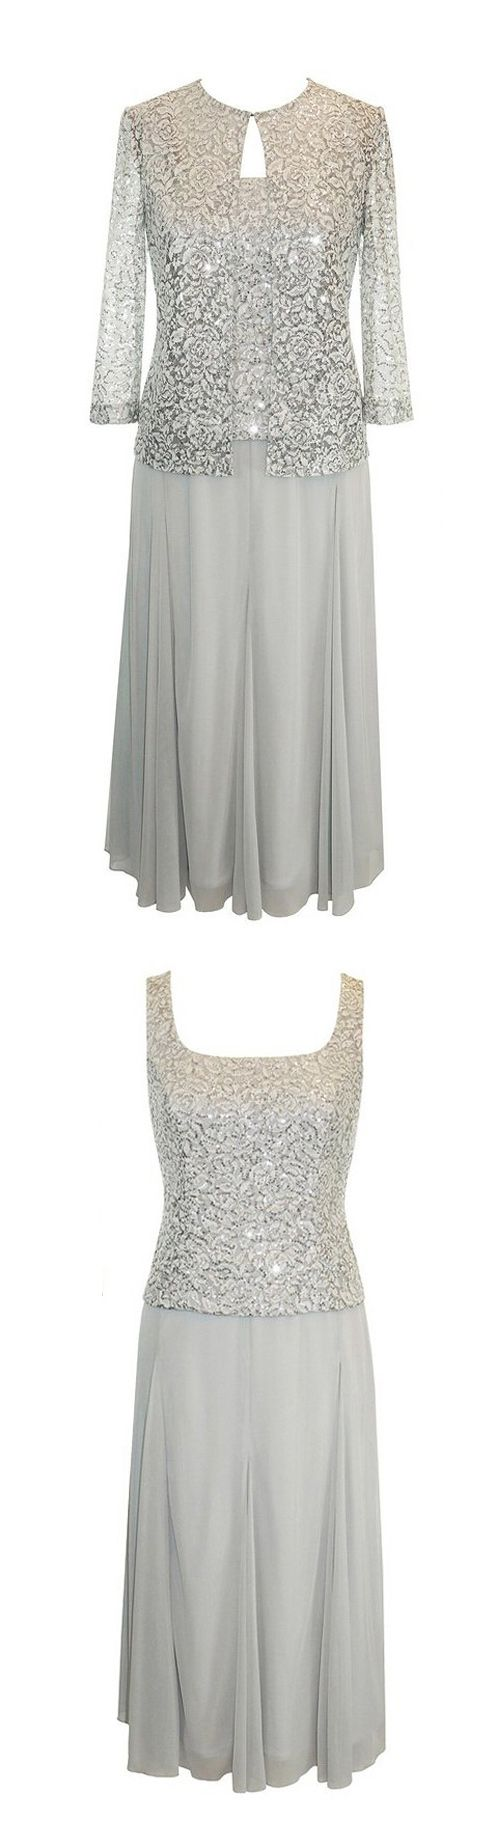 Mother of the bride/groon dress